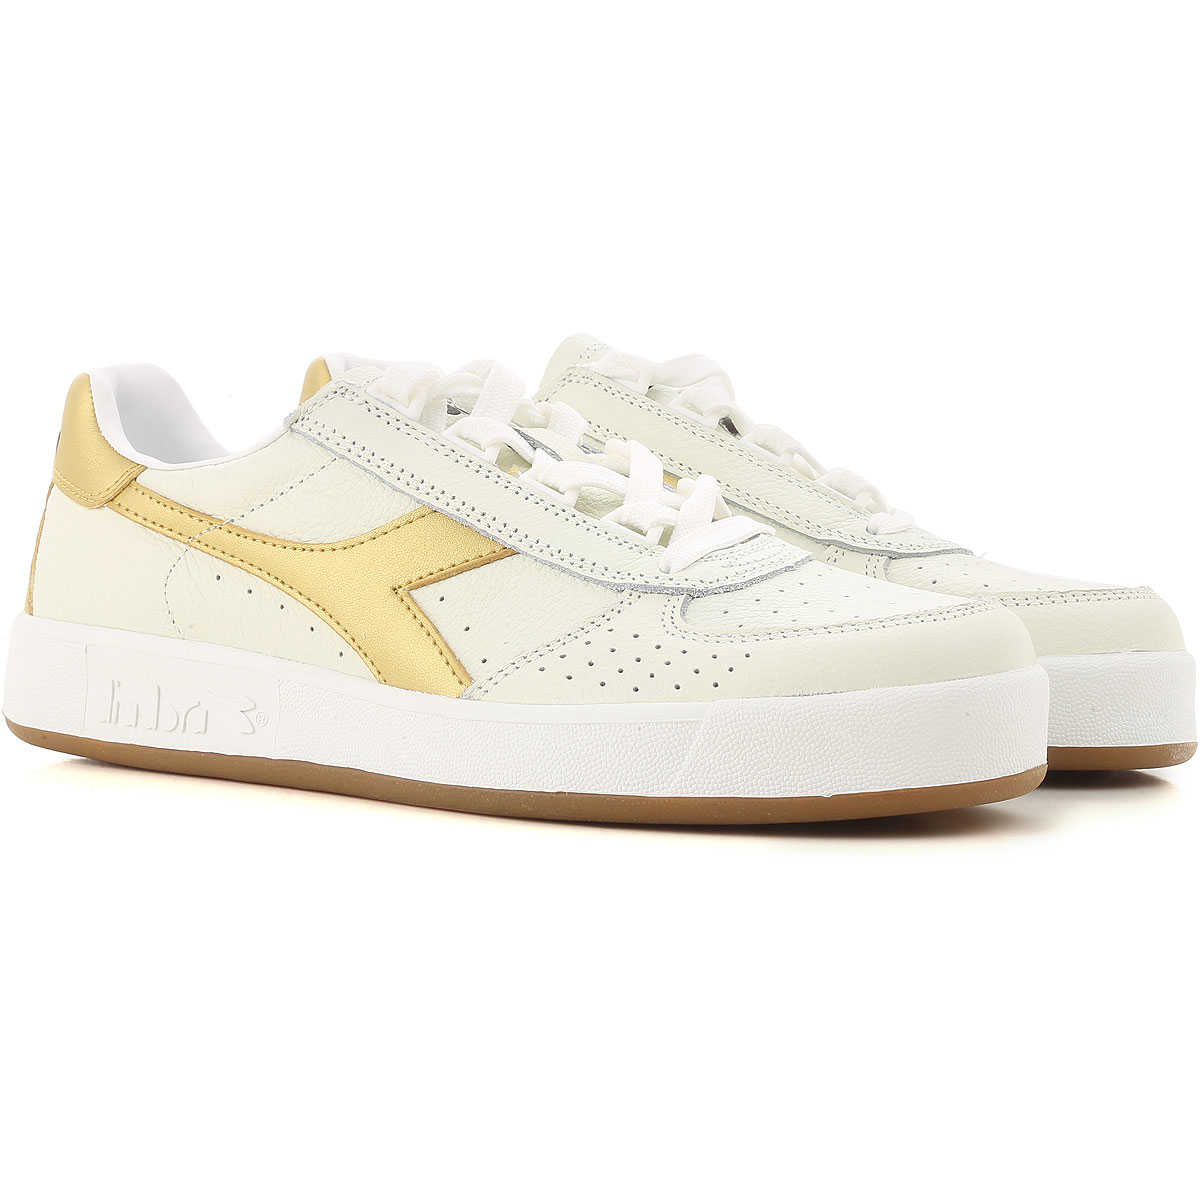 Diadora Sneakers for Men On Sale in